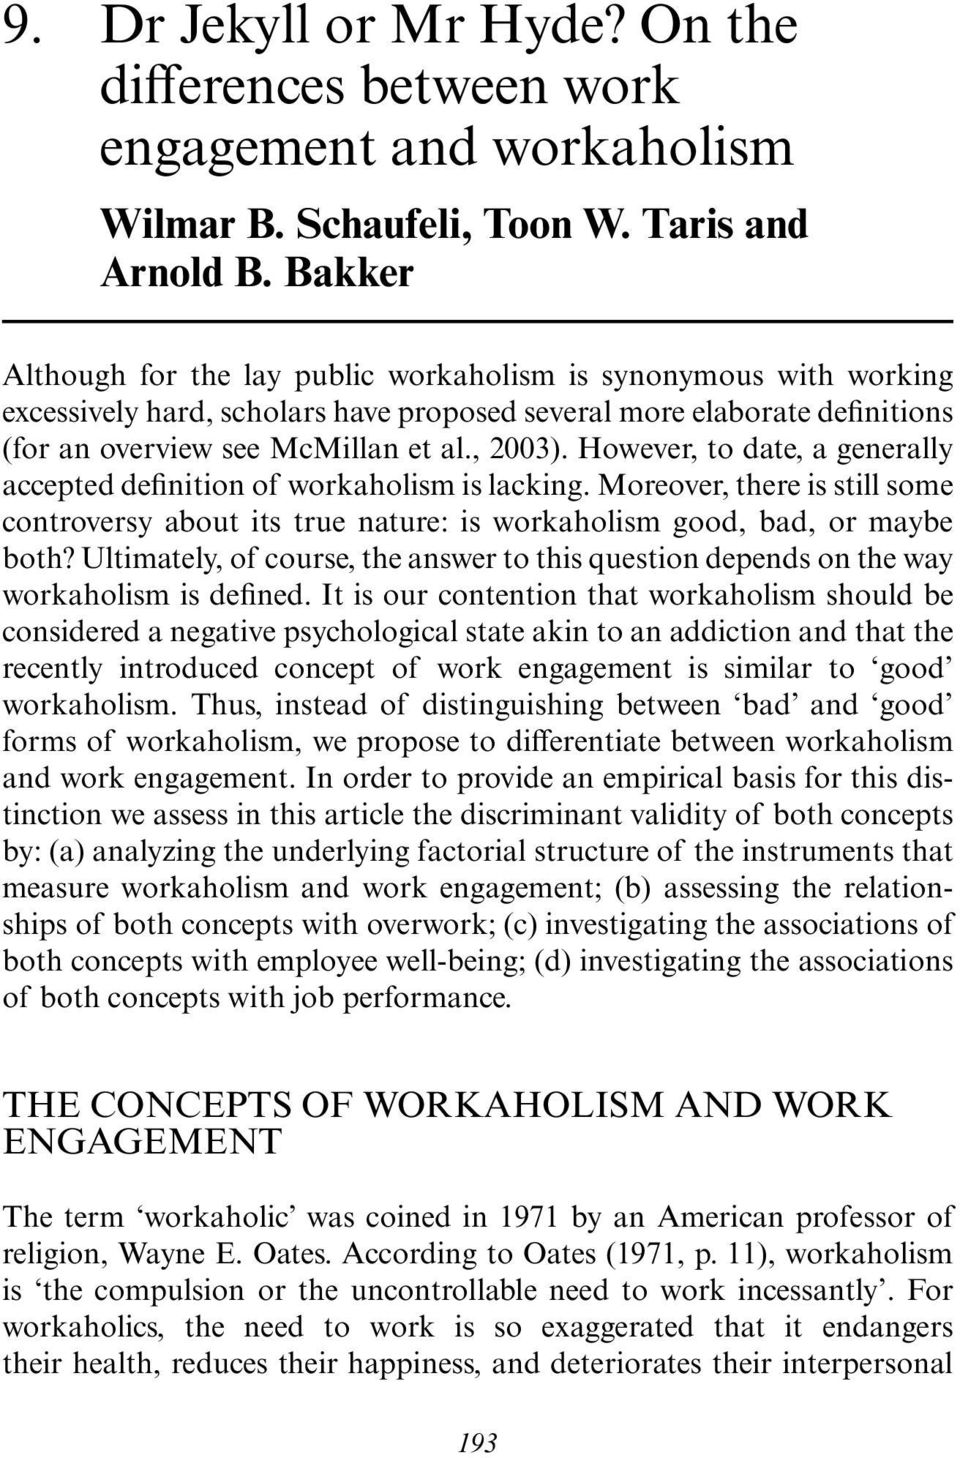 However, to date, a generally accepted definition of workaholism is lacking. Moreover, there is still some controversy about its true nature: is workaholism good, bad, or maybe both?